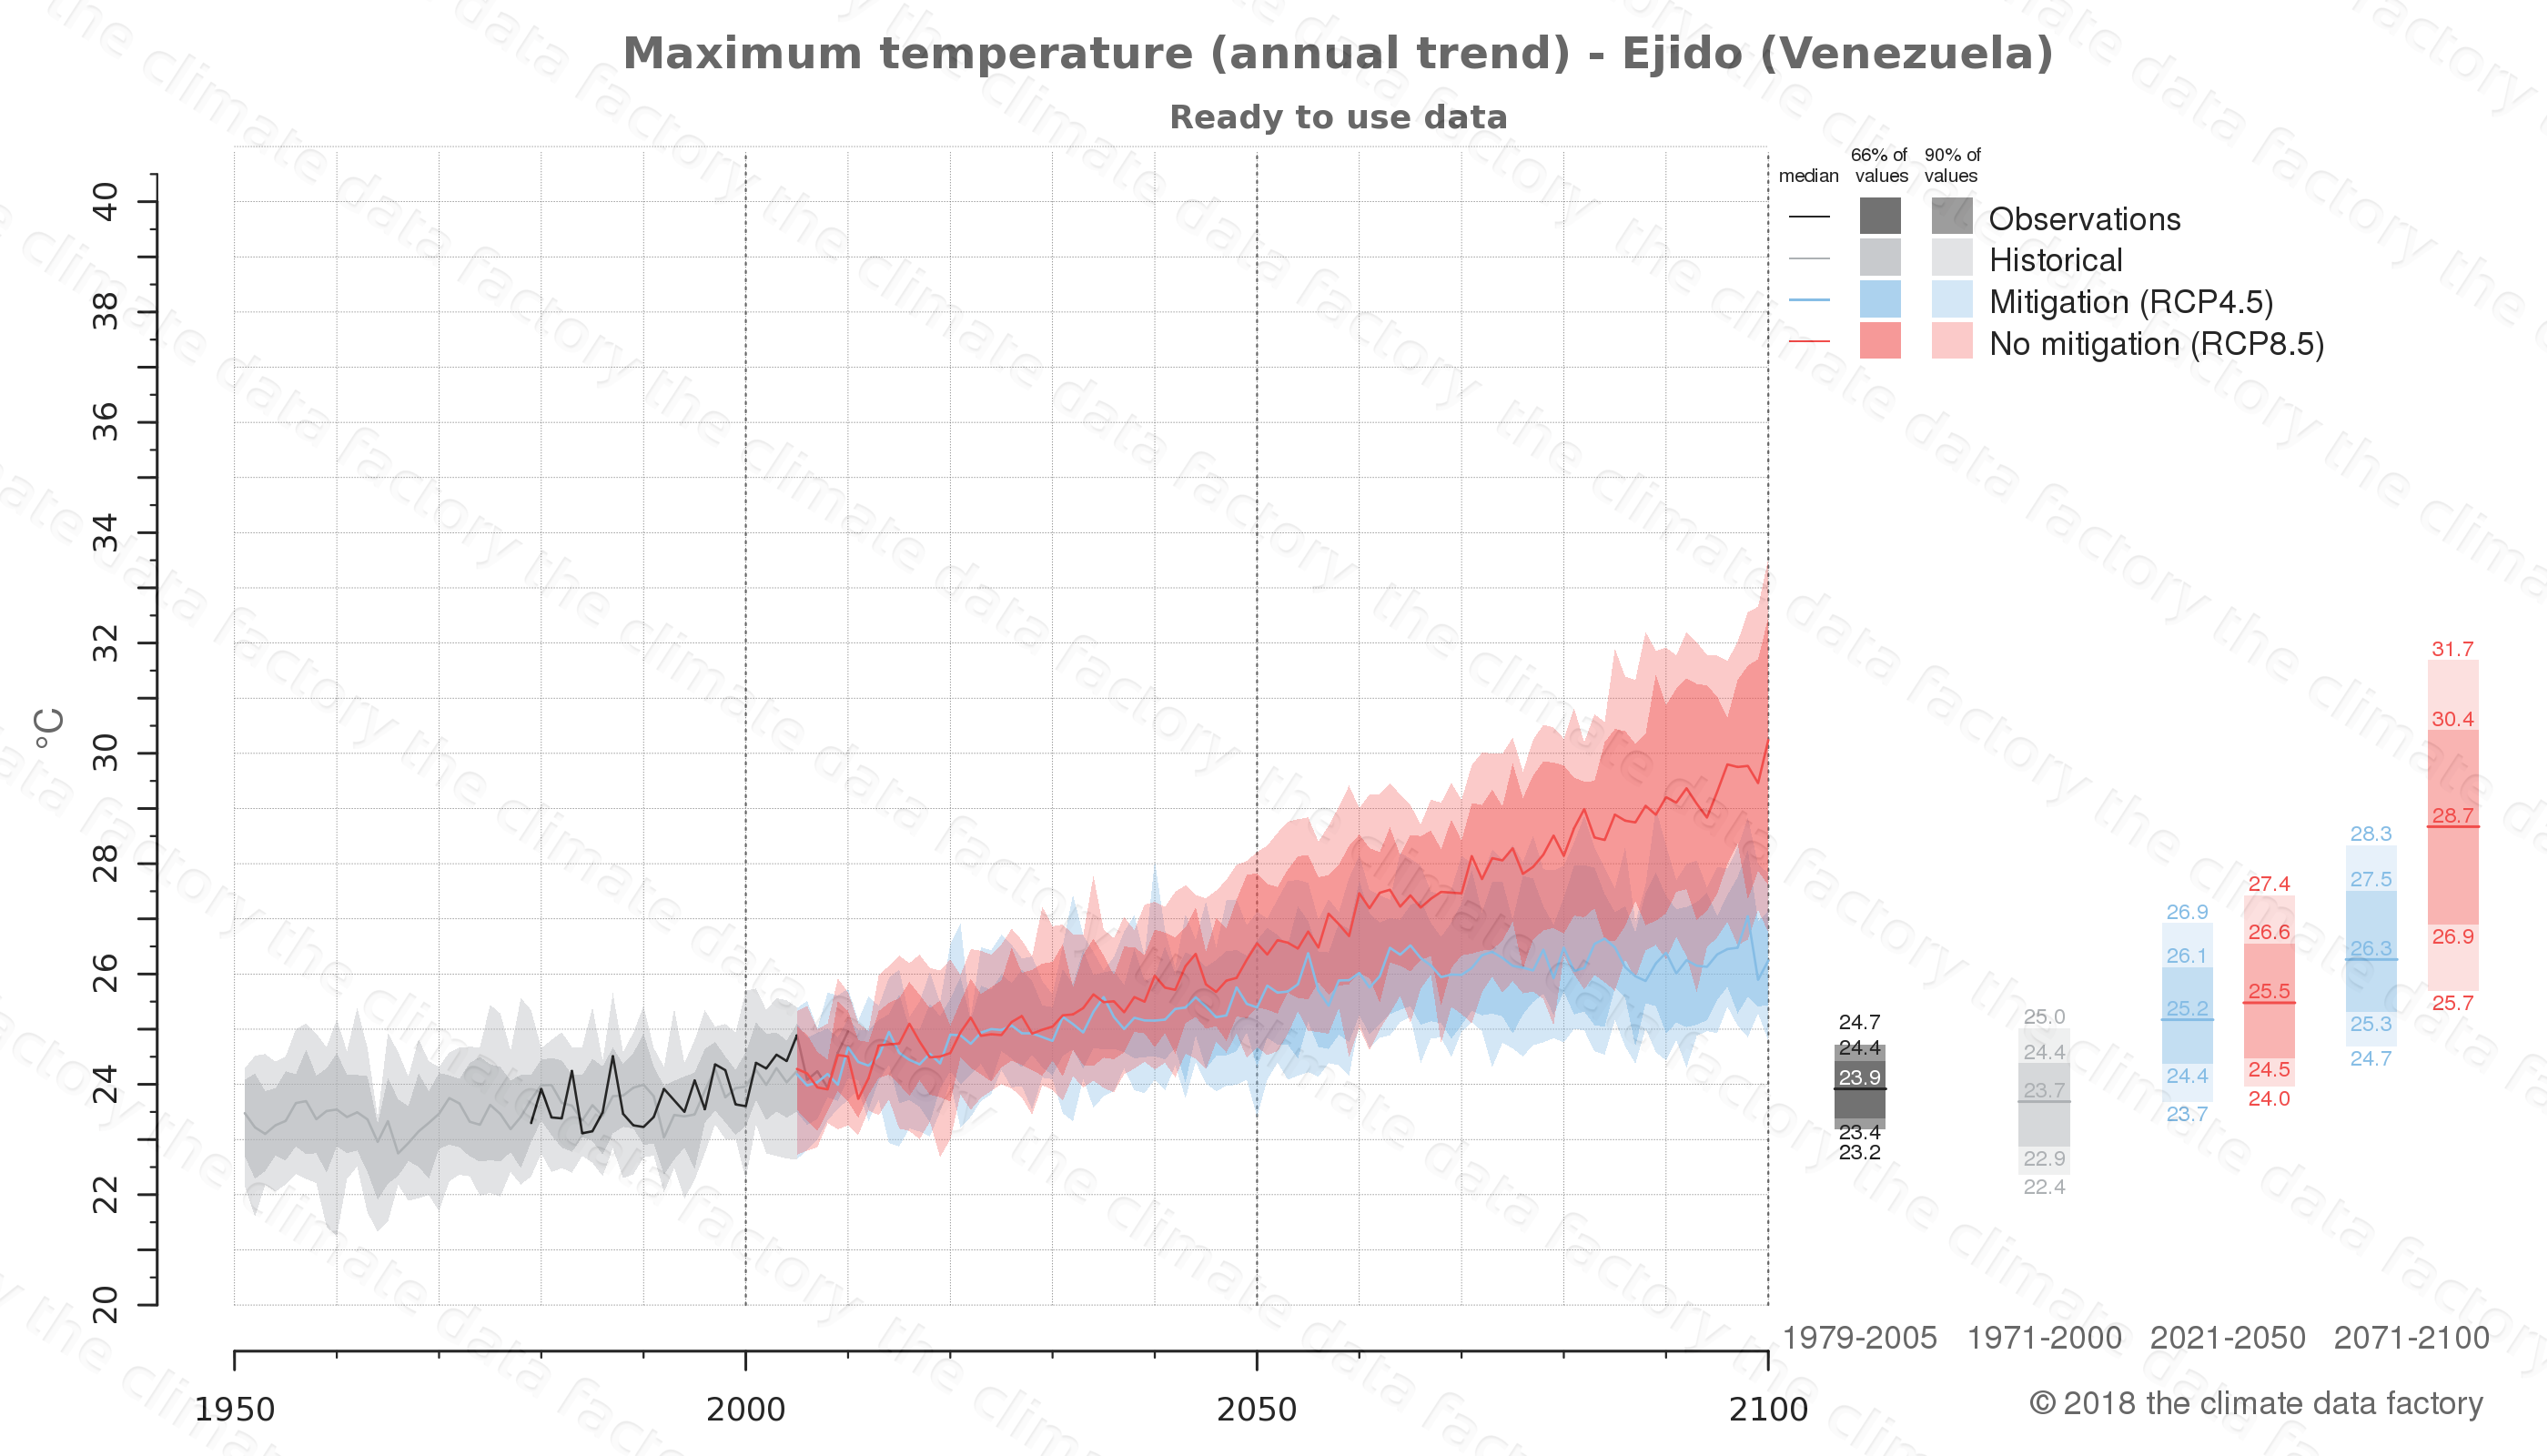 climate change data policy adaptation climate graph city data maximum-temperature ejido venezuela